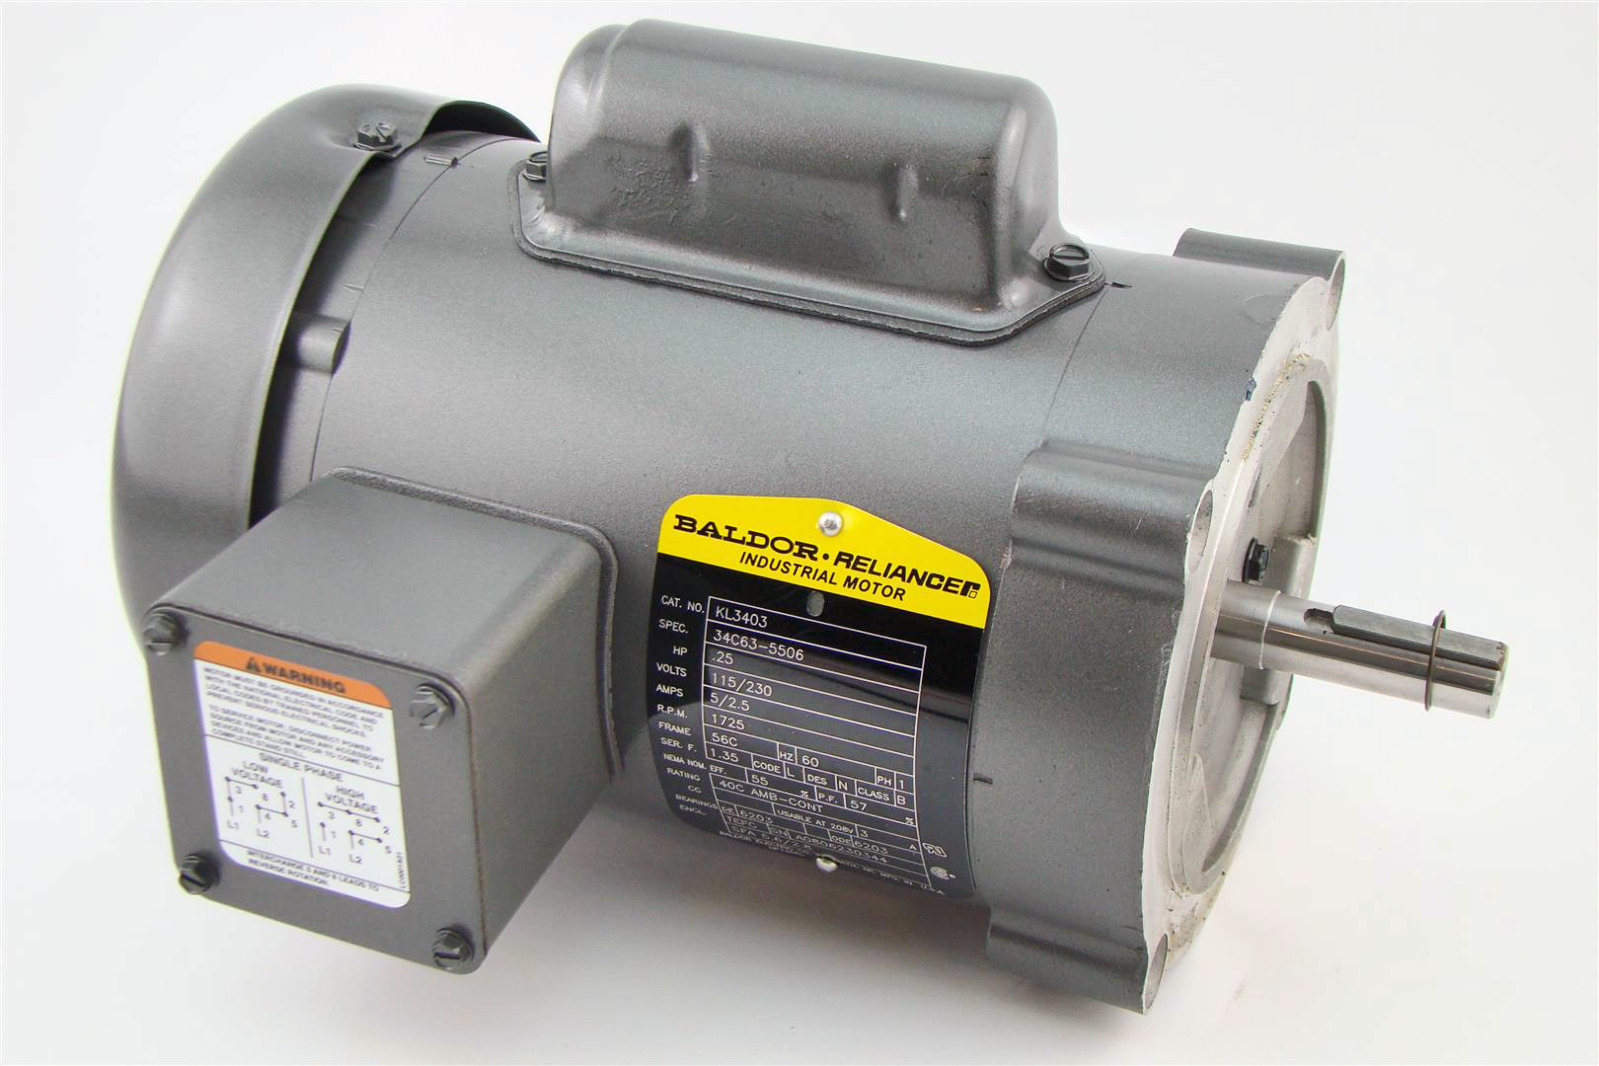 baldor reliancer industrial motor 25hp 115 230v single